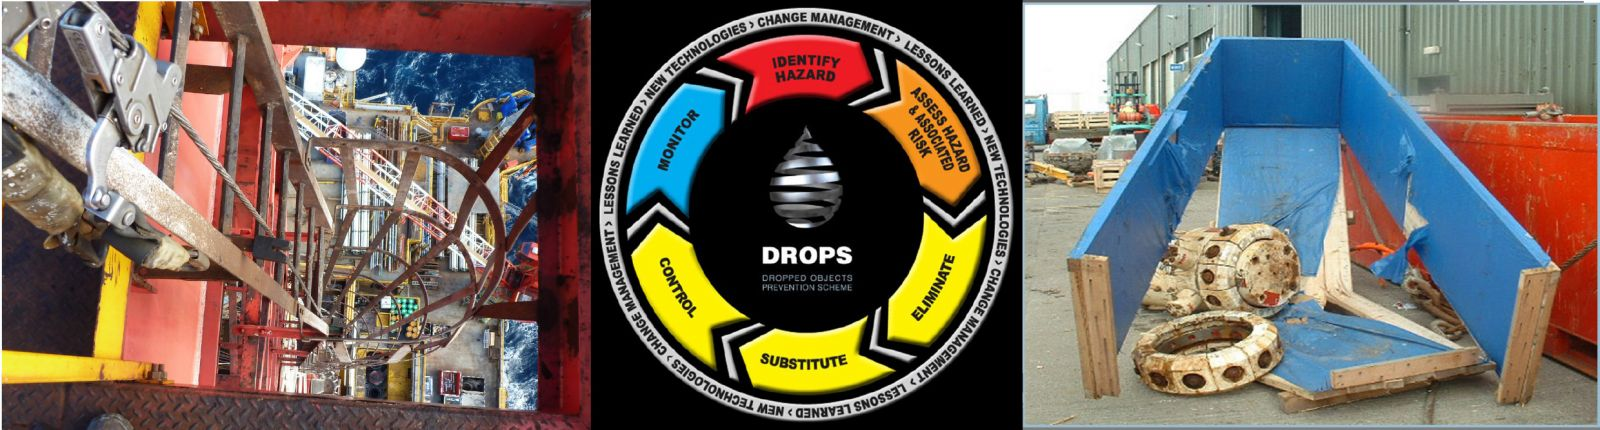 Dropped Object Awareness & Prevention Course-image